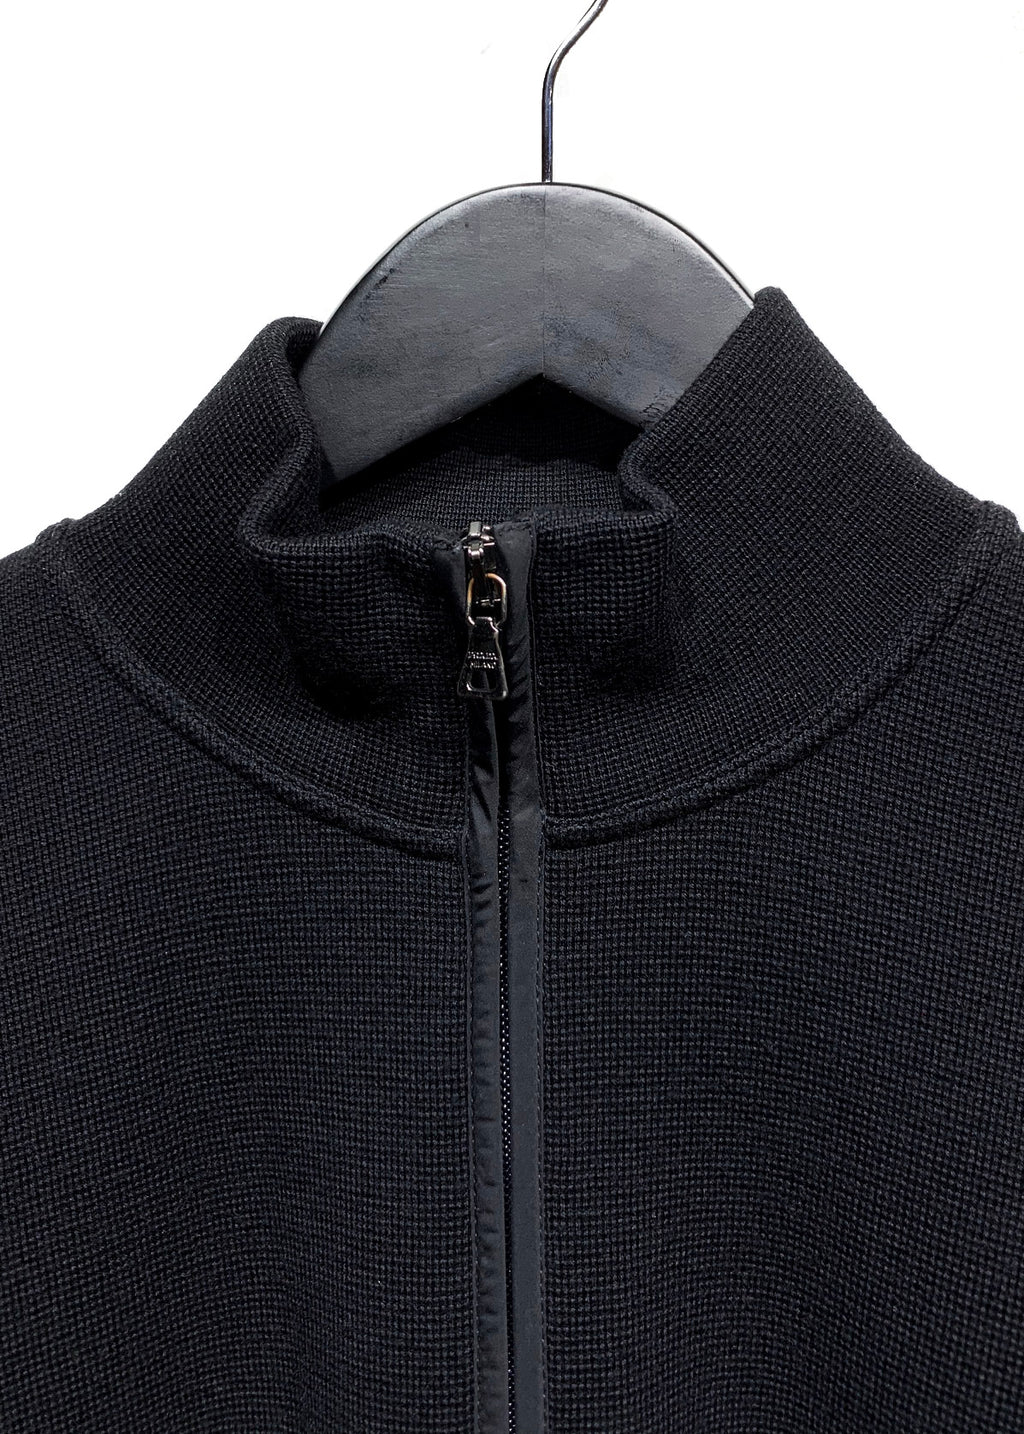 Prada Linea Rossa Black Wool Nylon Elbow Zip-up Sweater